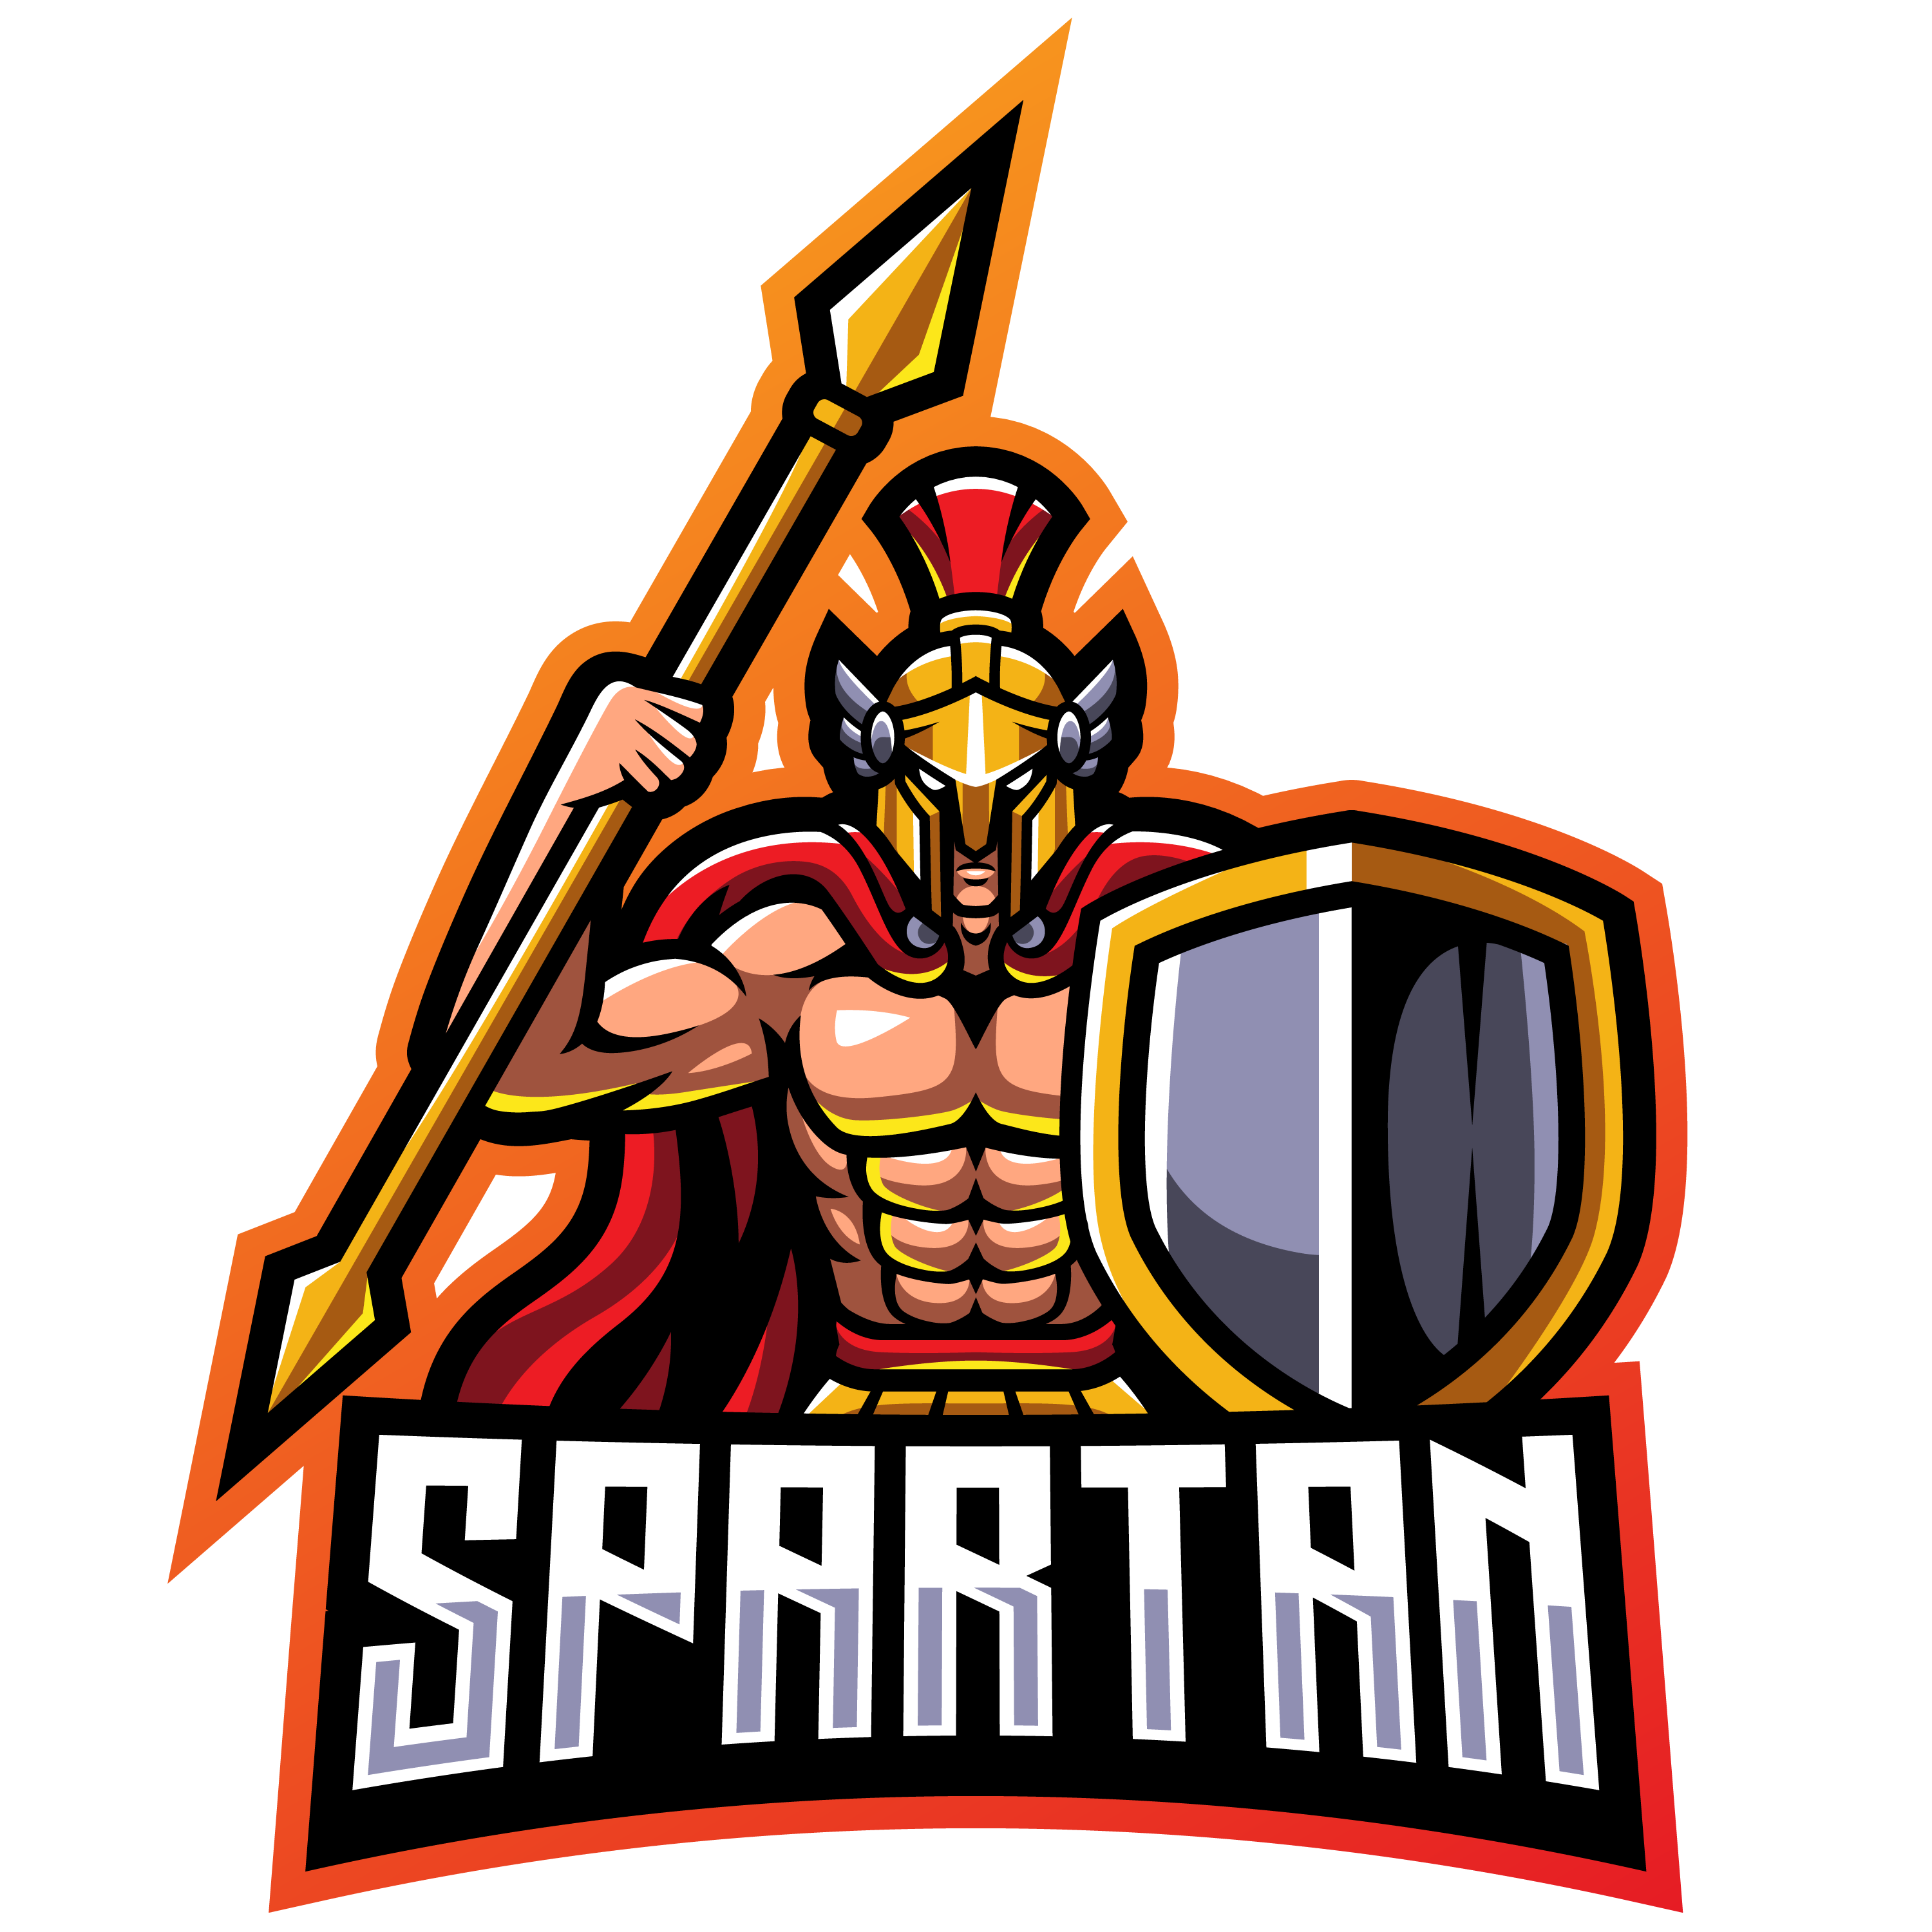 Spartan-Army-Esports-Mascot-Logo-Template-PNG-Transparent